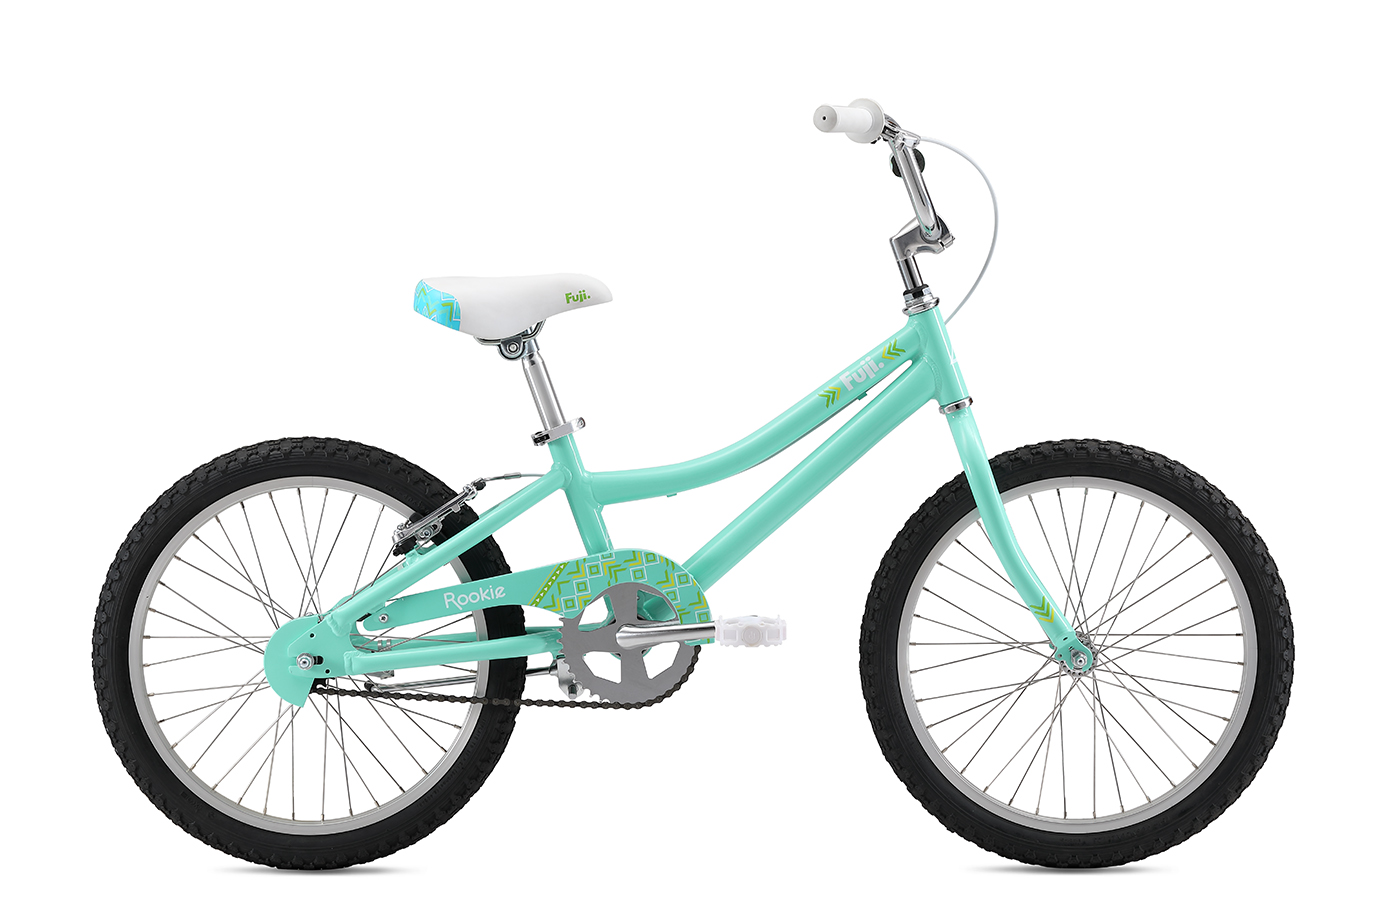 """Fuji Rookie 20"""" Girls   The all-new lightweight and durable aluminum frame, easy-to-use coaster brake with additional v-brake option to help little ones adjust to hand braking and aluminum wheels with stainless steel spokes that are durable and don't rust over time make for the perfect kids bike."""